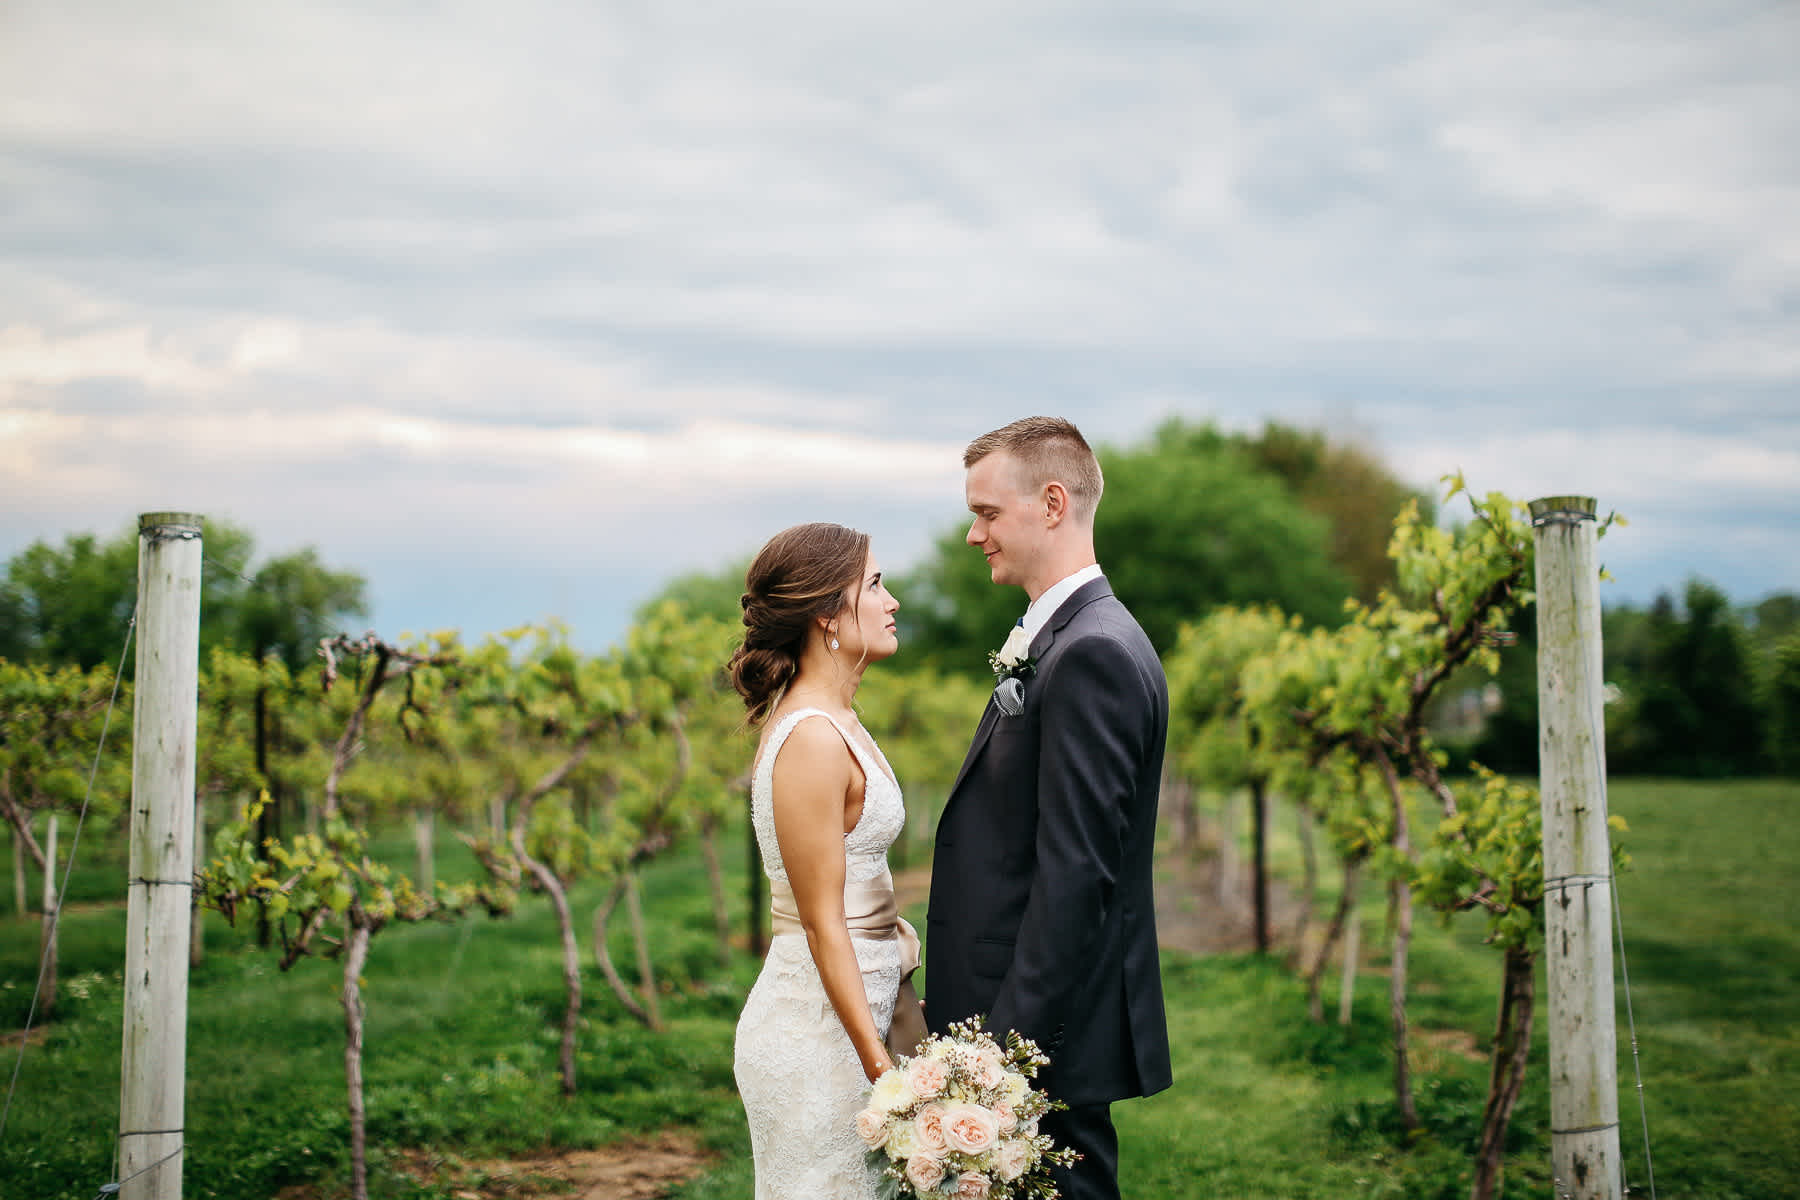 Pennsylvania-Newton-Rosebank-winery-spring-lifestyle-wedding-150